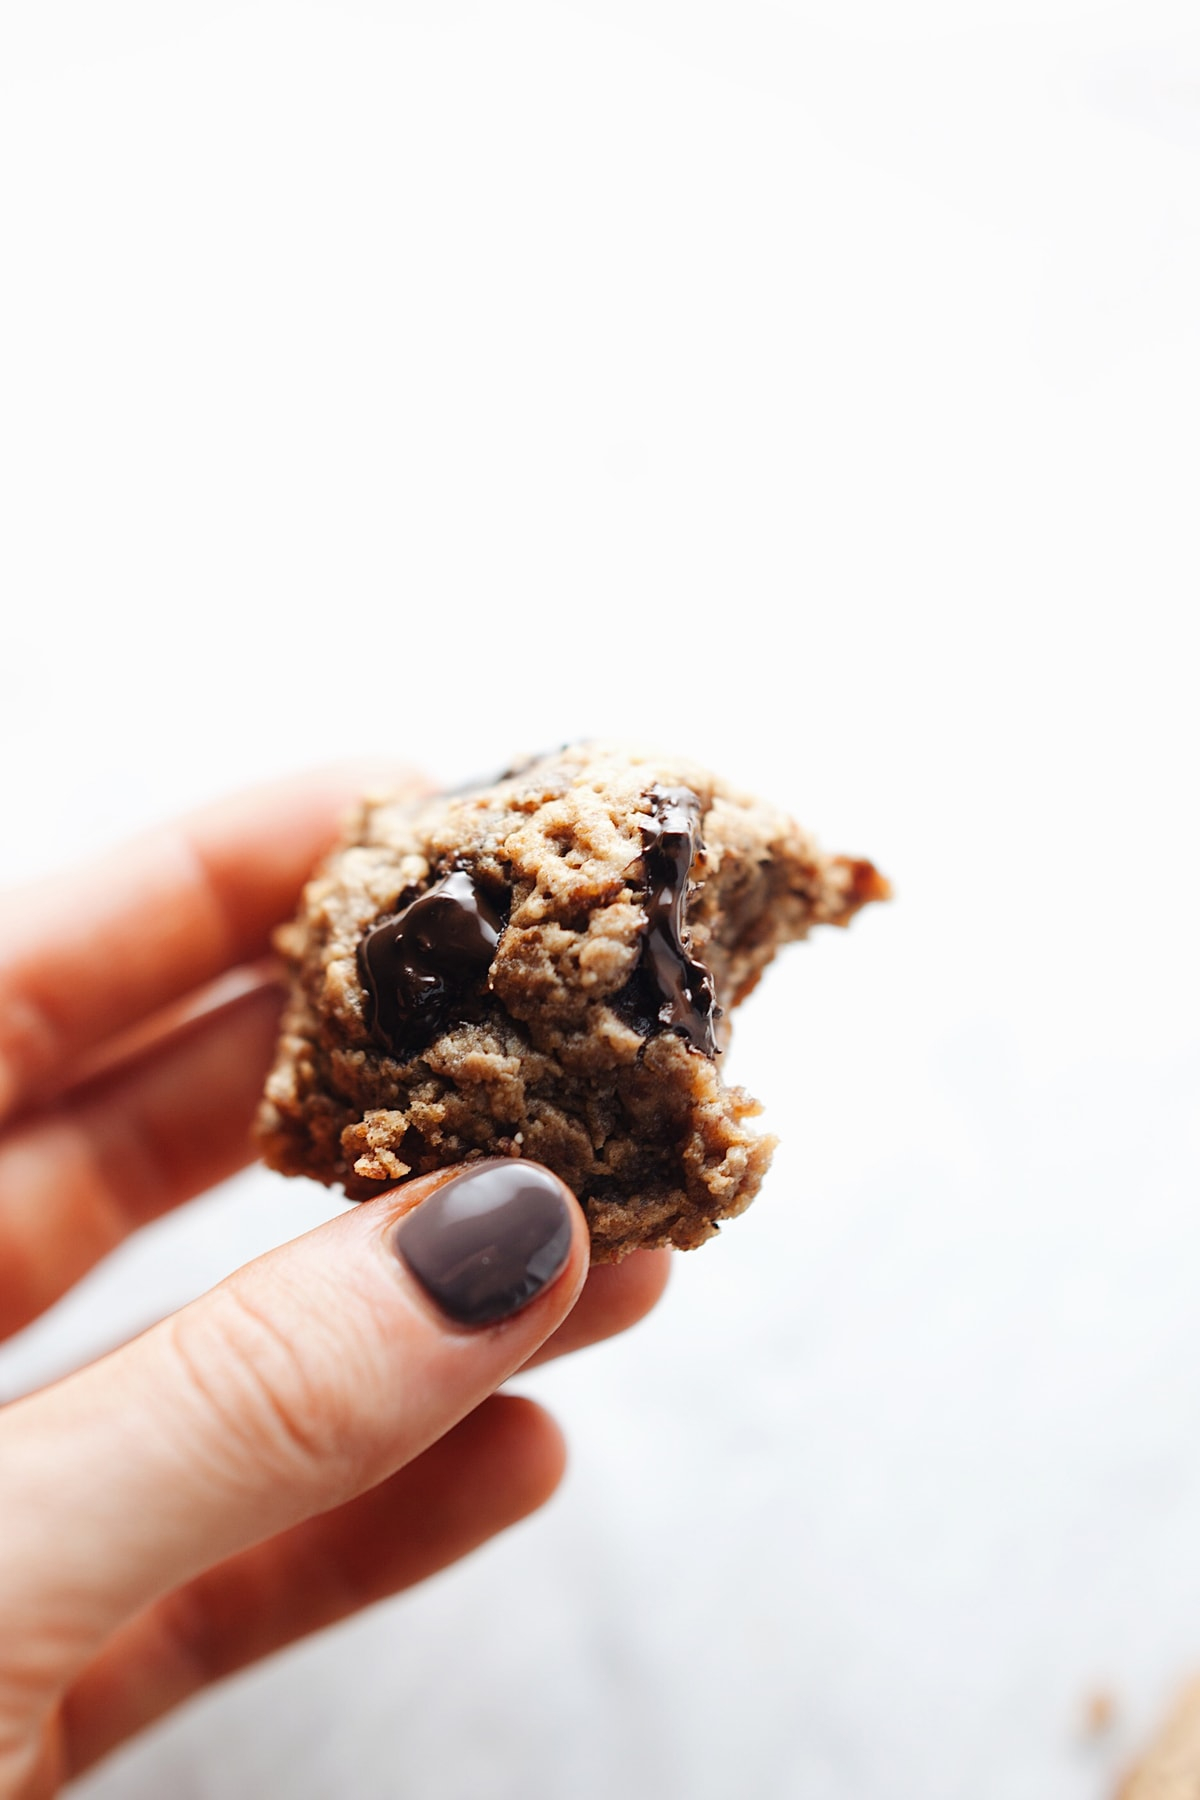 Fingers holding chocolate chip protein cookie with a bite out of it